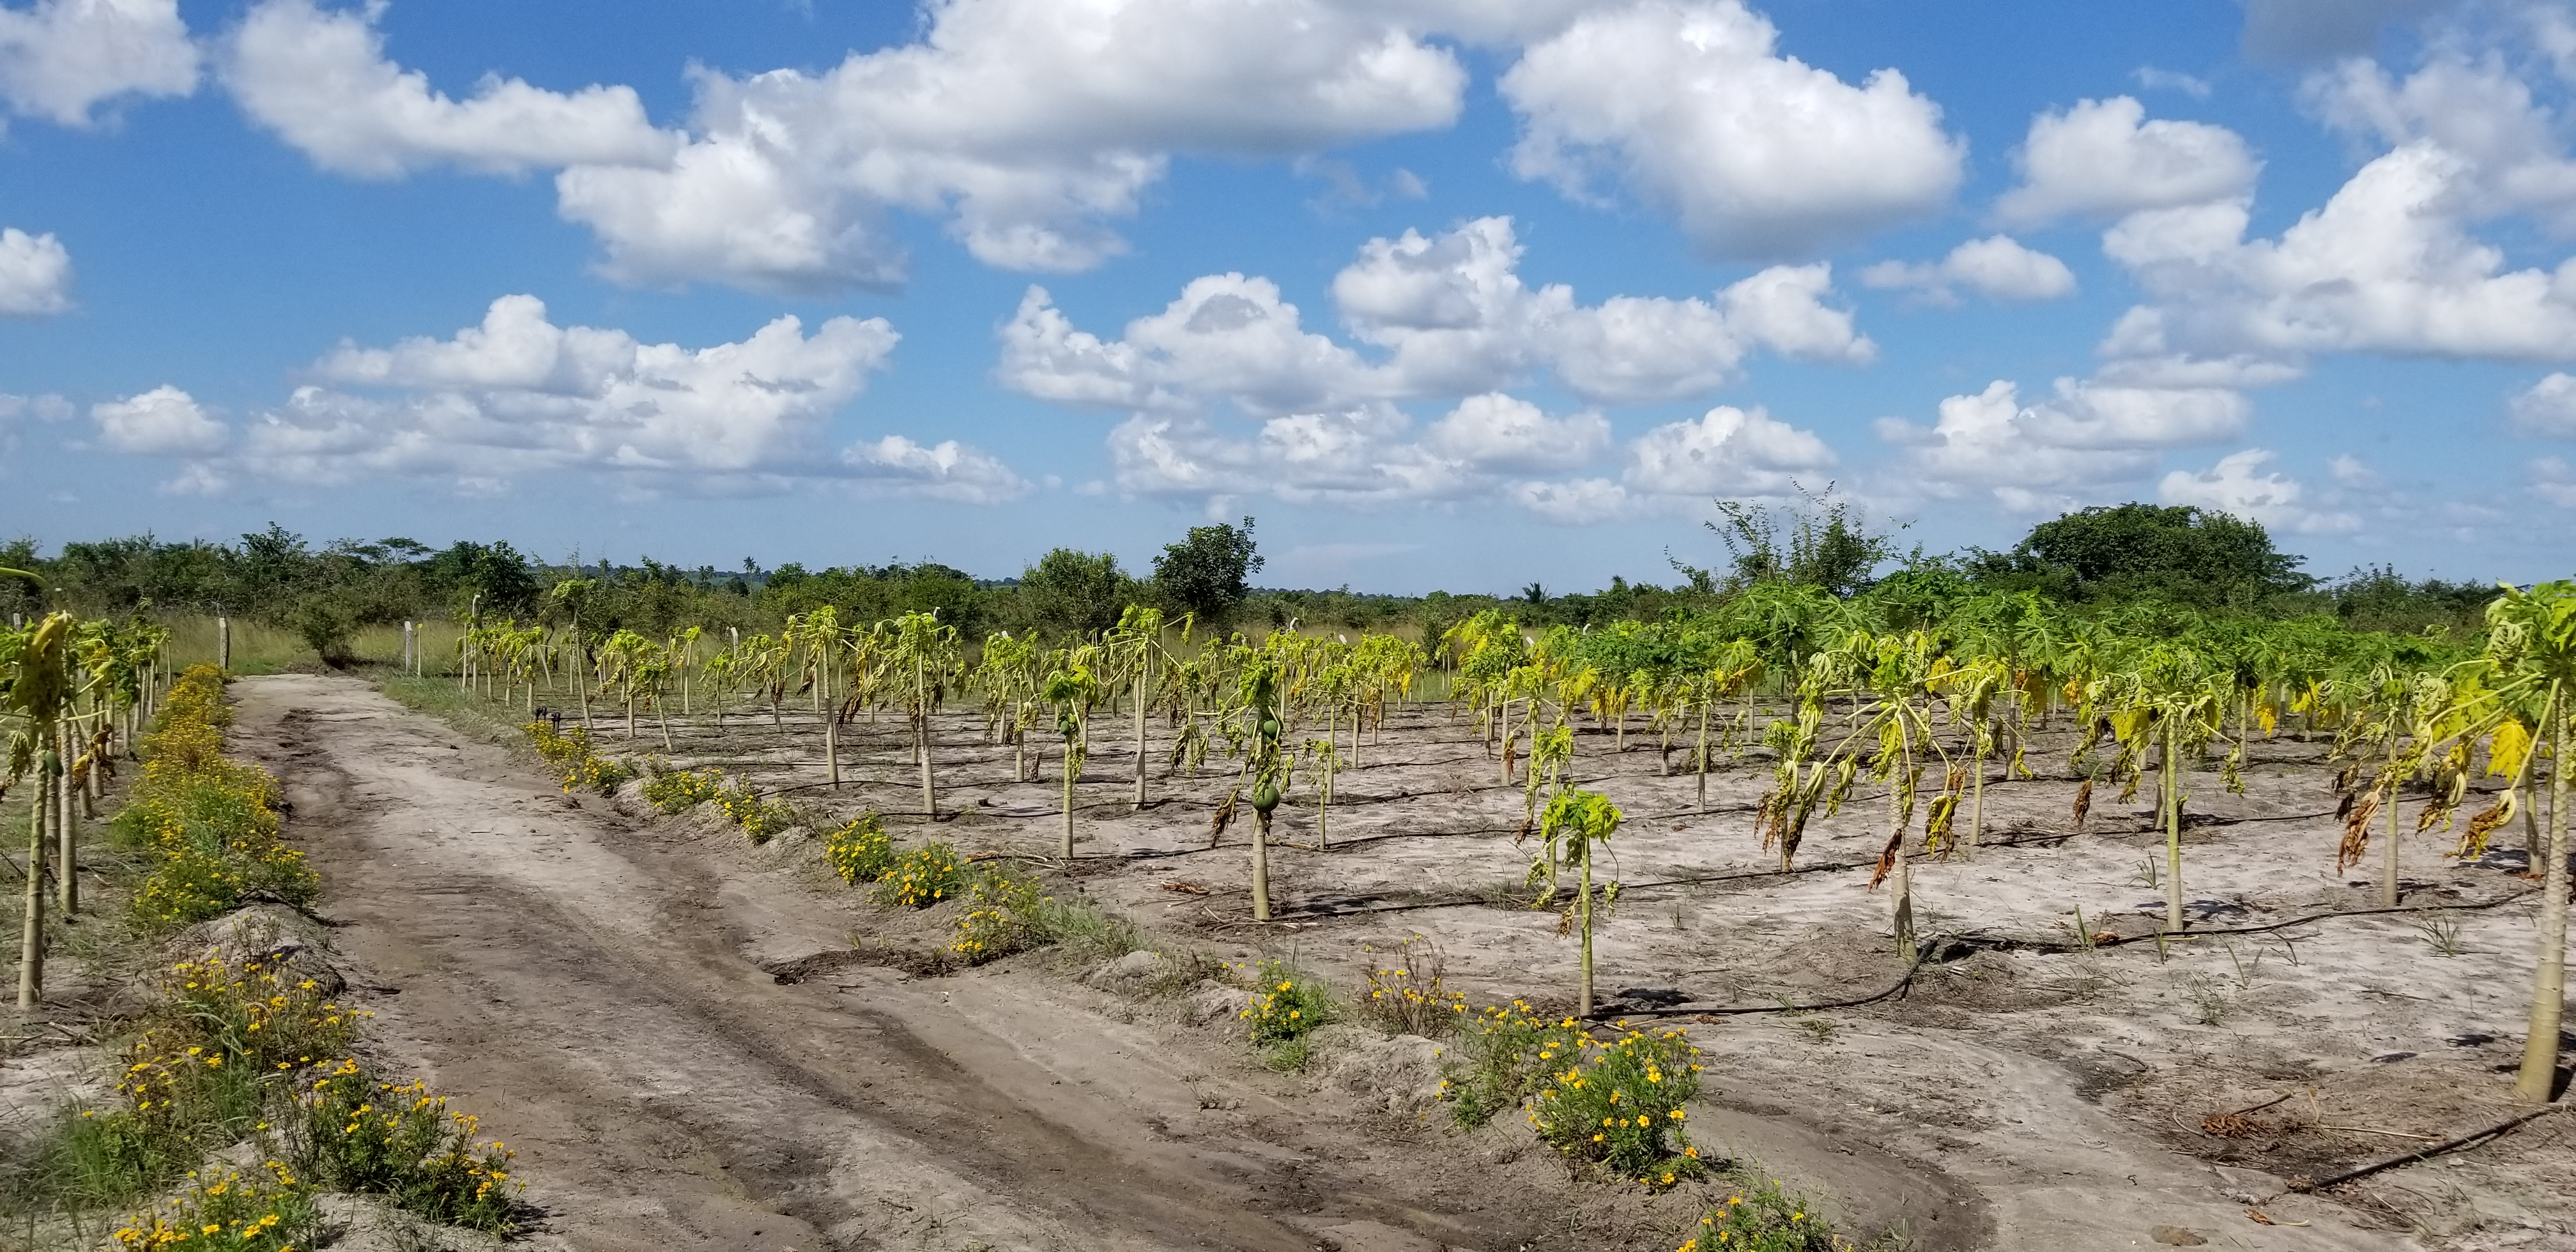 Some of the affected papaya trees.